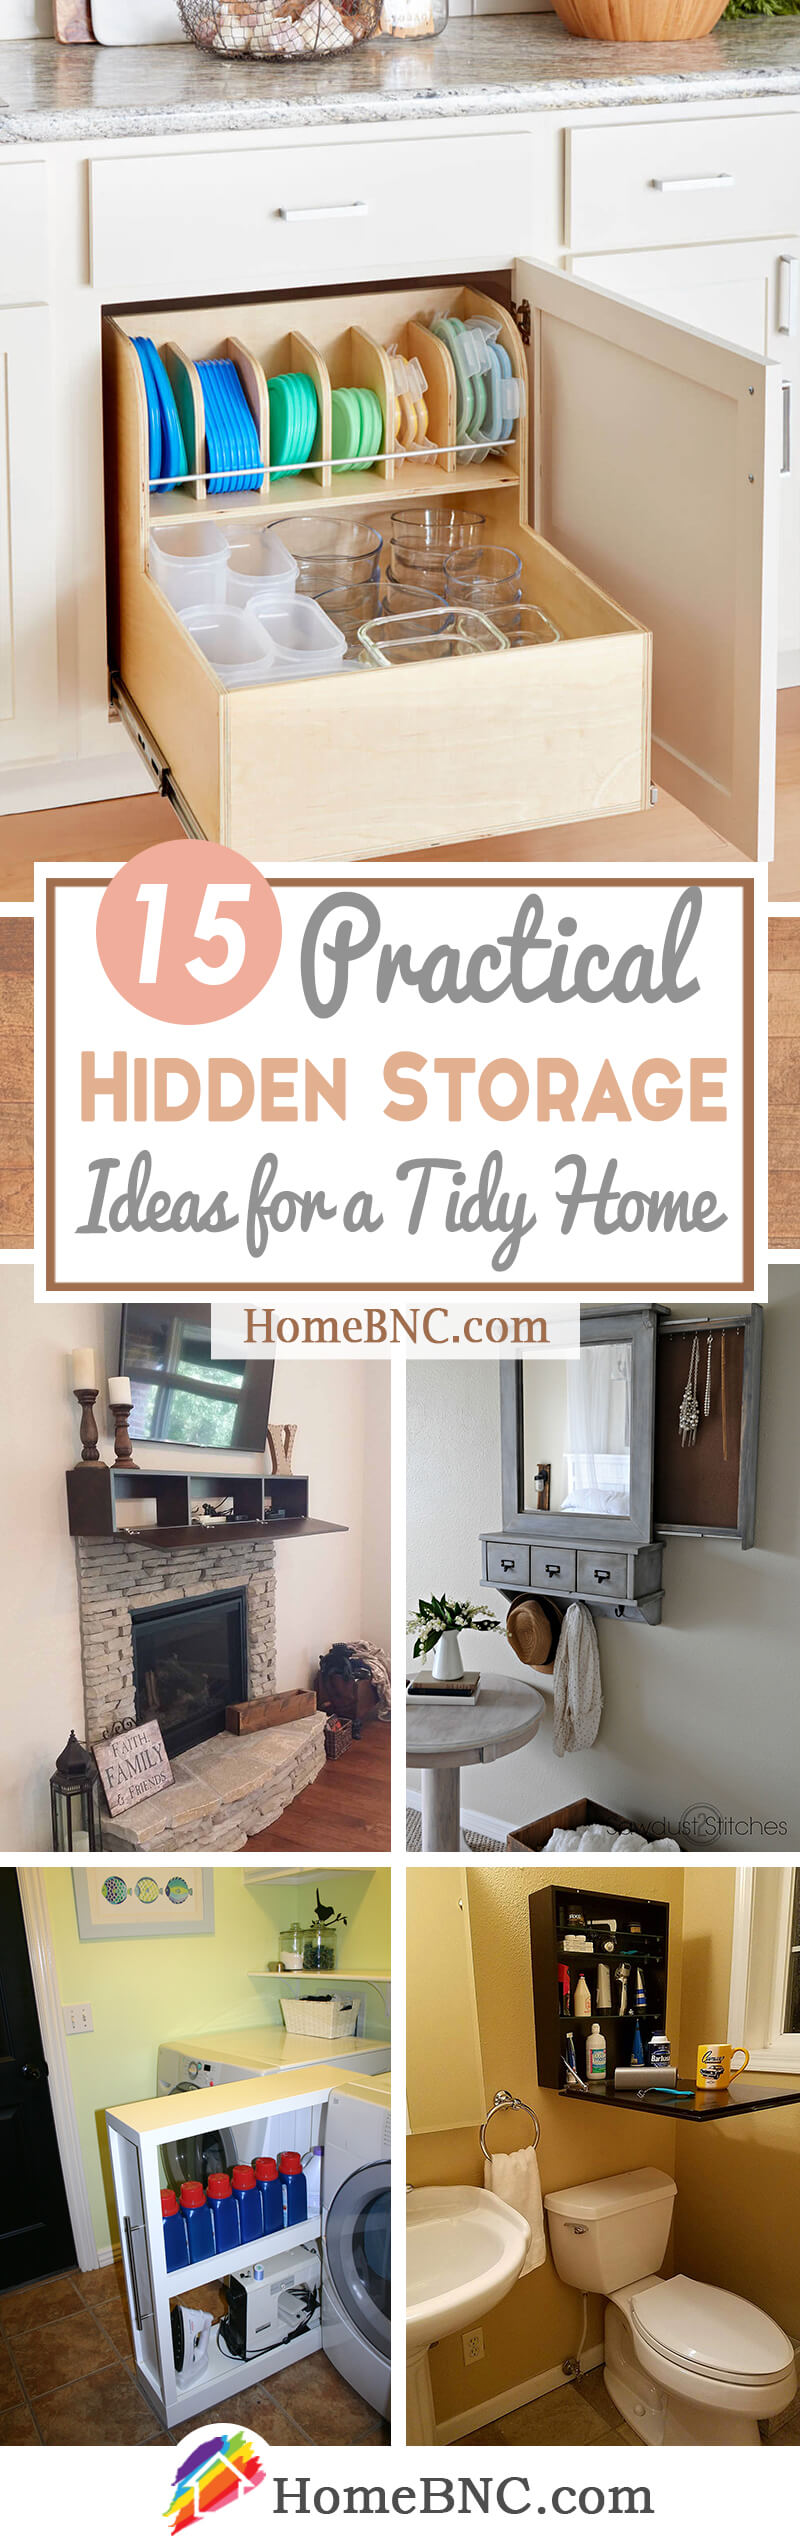 12 Best Hidden Storage Ideas and Designs for 12